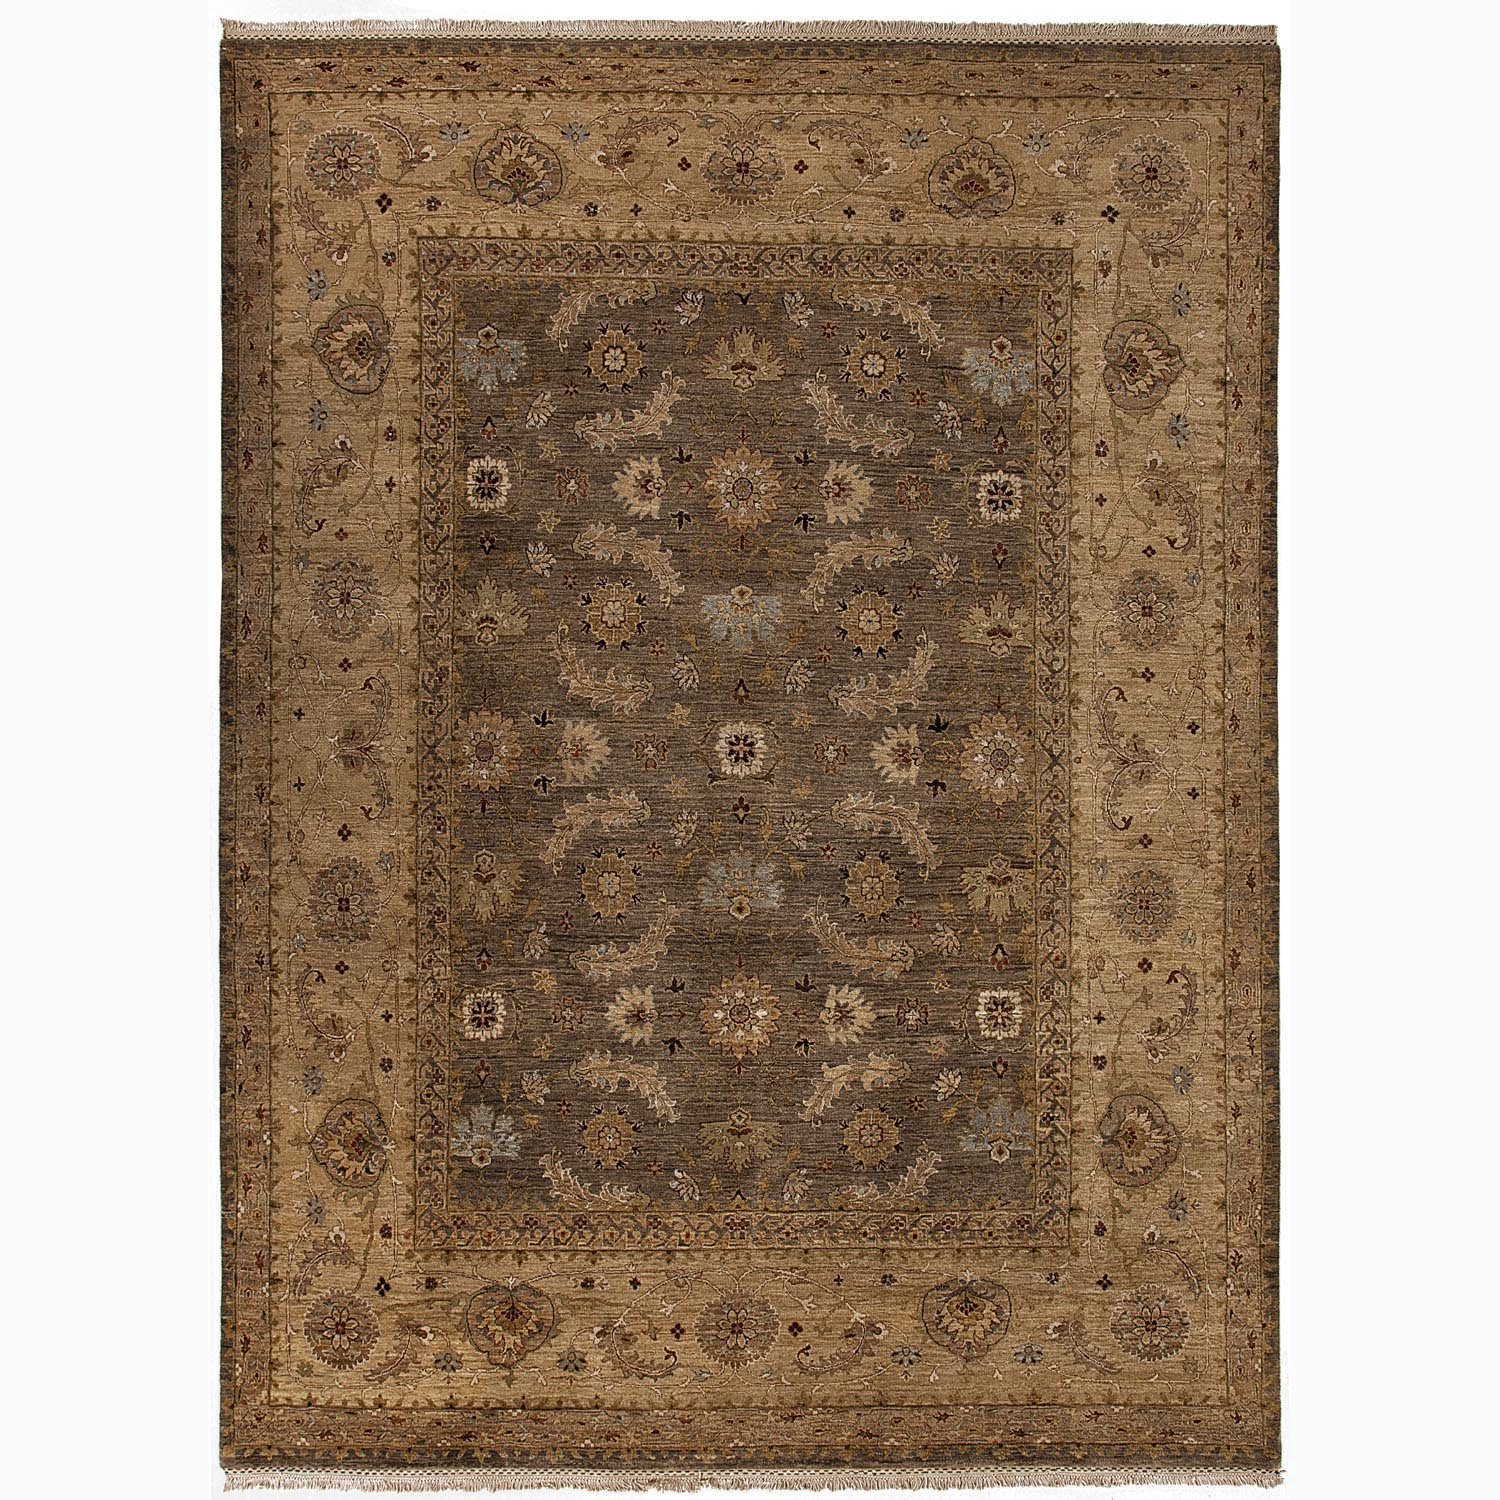 Handmade Oriental Pattern Brown/ Tan Wool Rug (6 x 9)